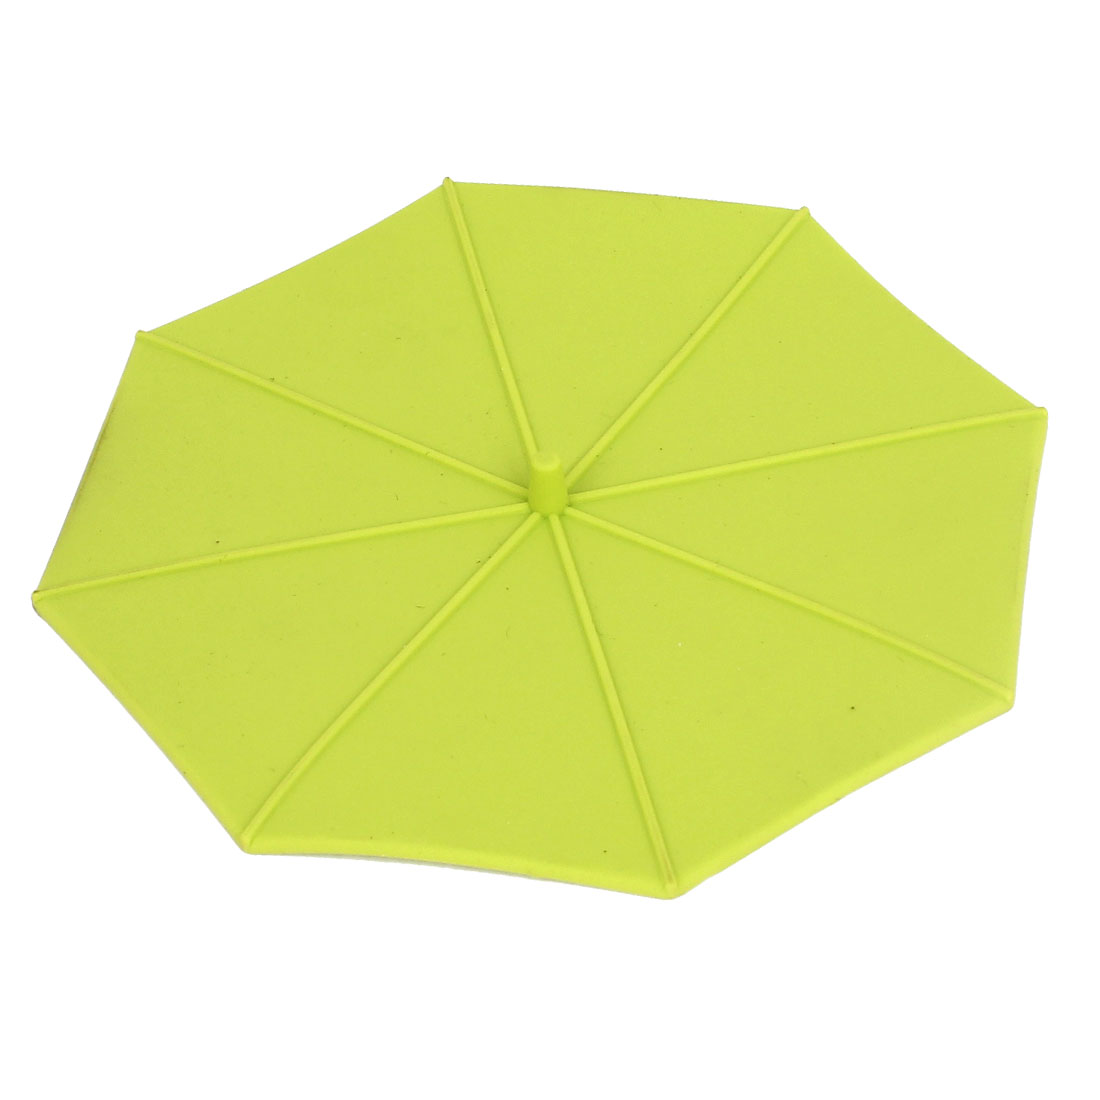 Umbrella Shape Coffe Tea Water Cup Silicone Seal Airtight Cover Cap Lip Green